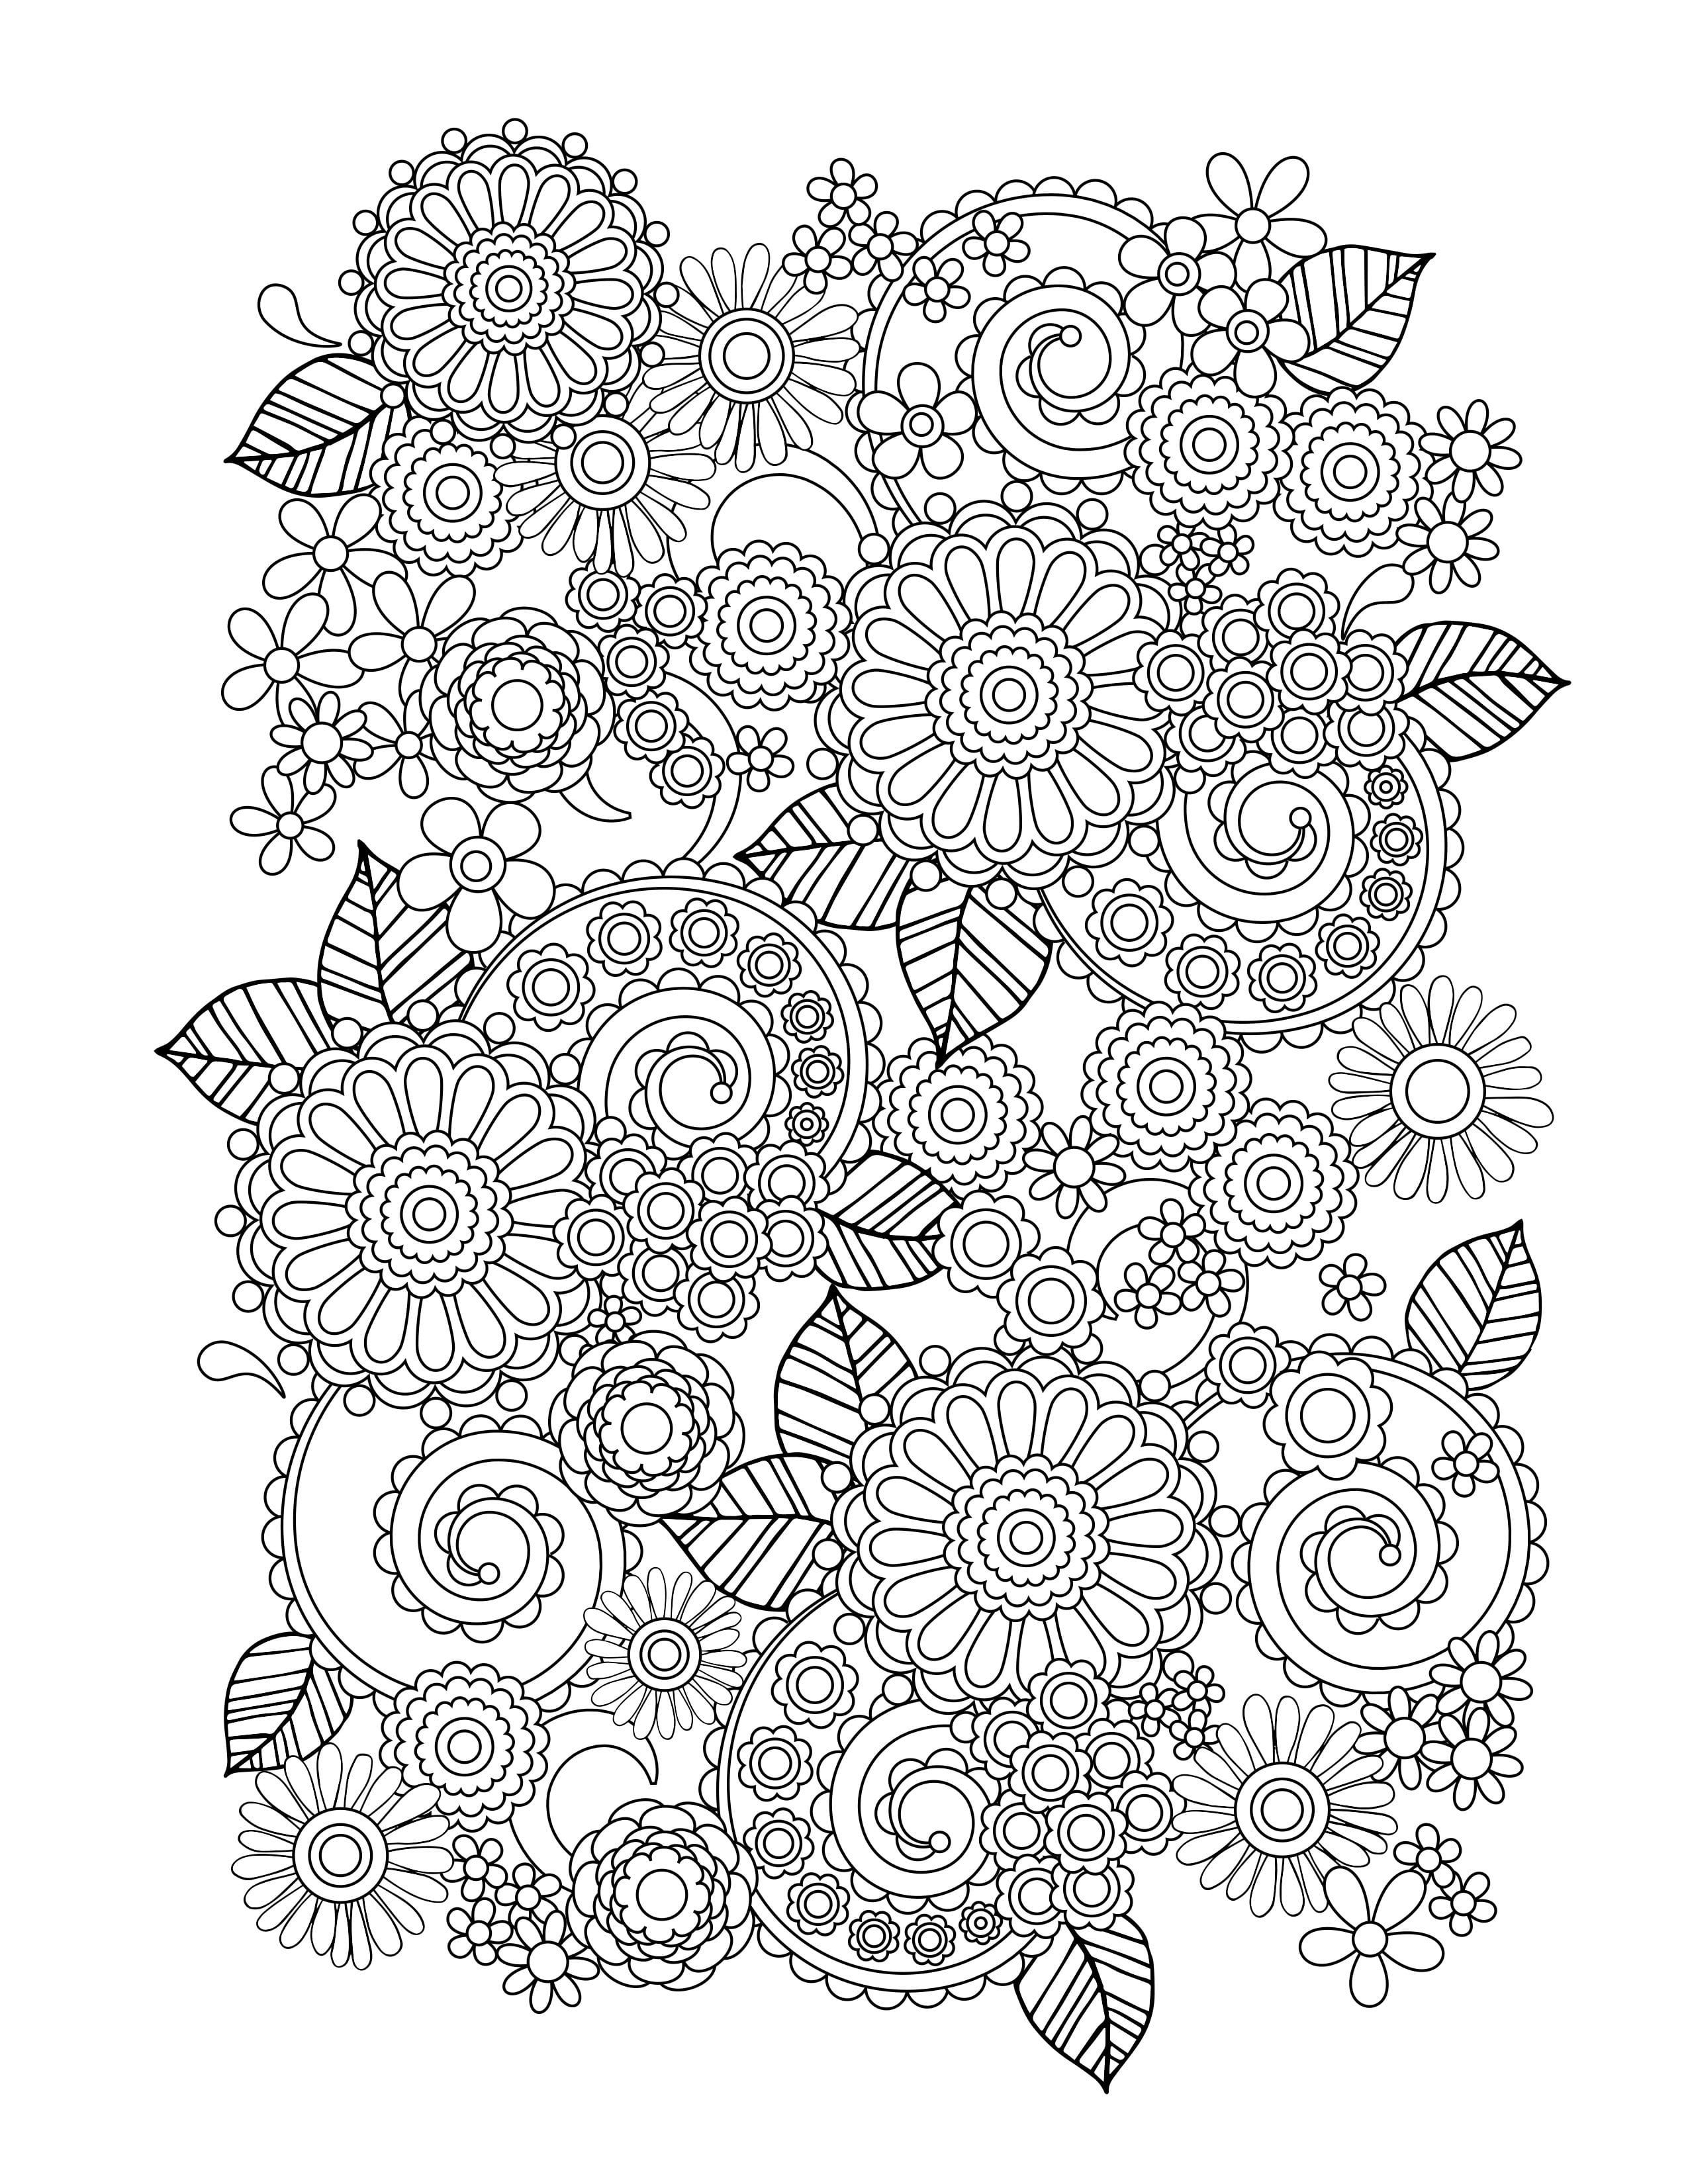 The Adult Coloring Book 25239